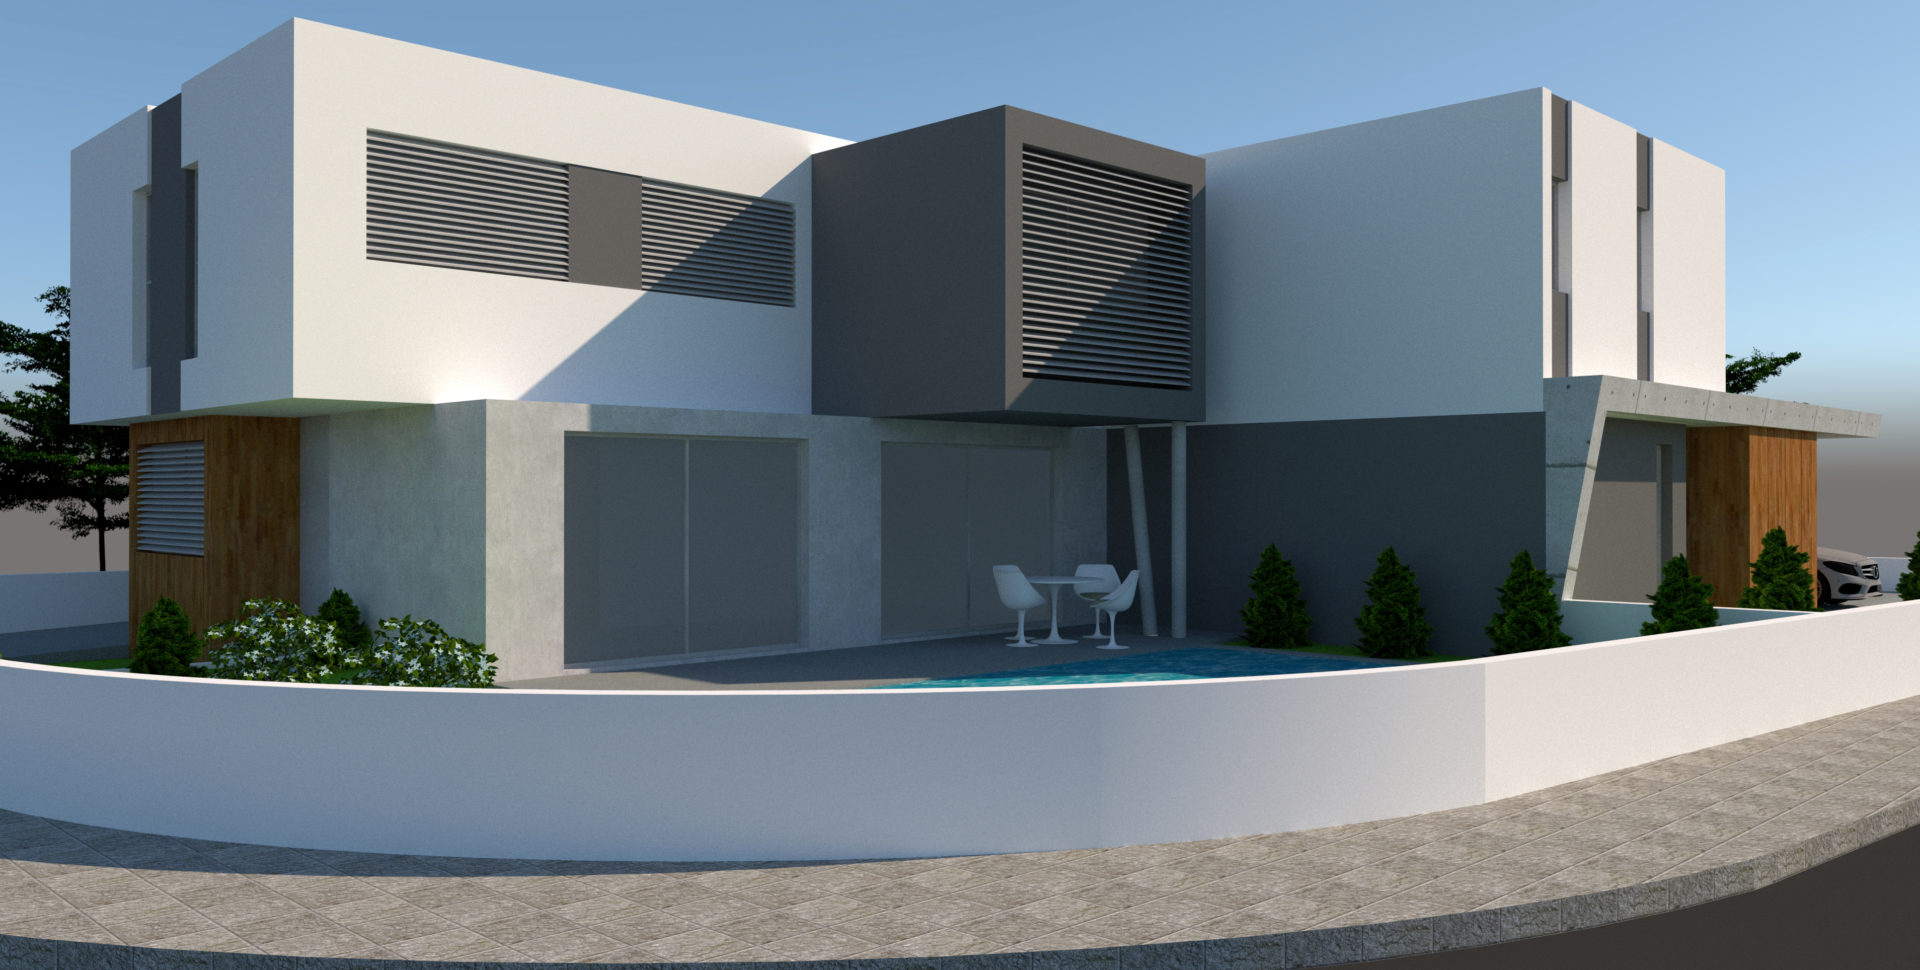 4 Bedroom House for Sale in Latsia (near the Hospital)